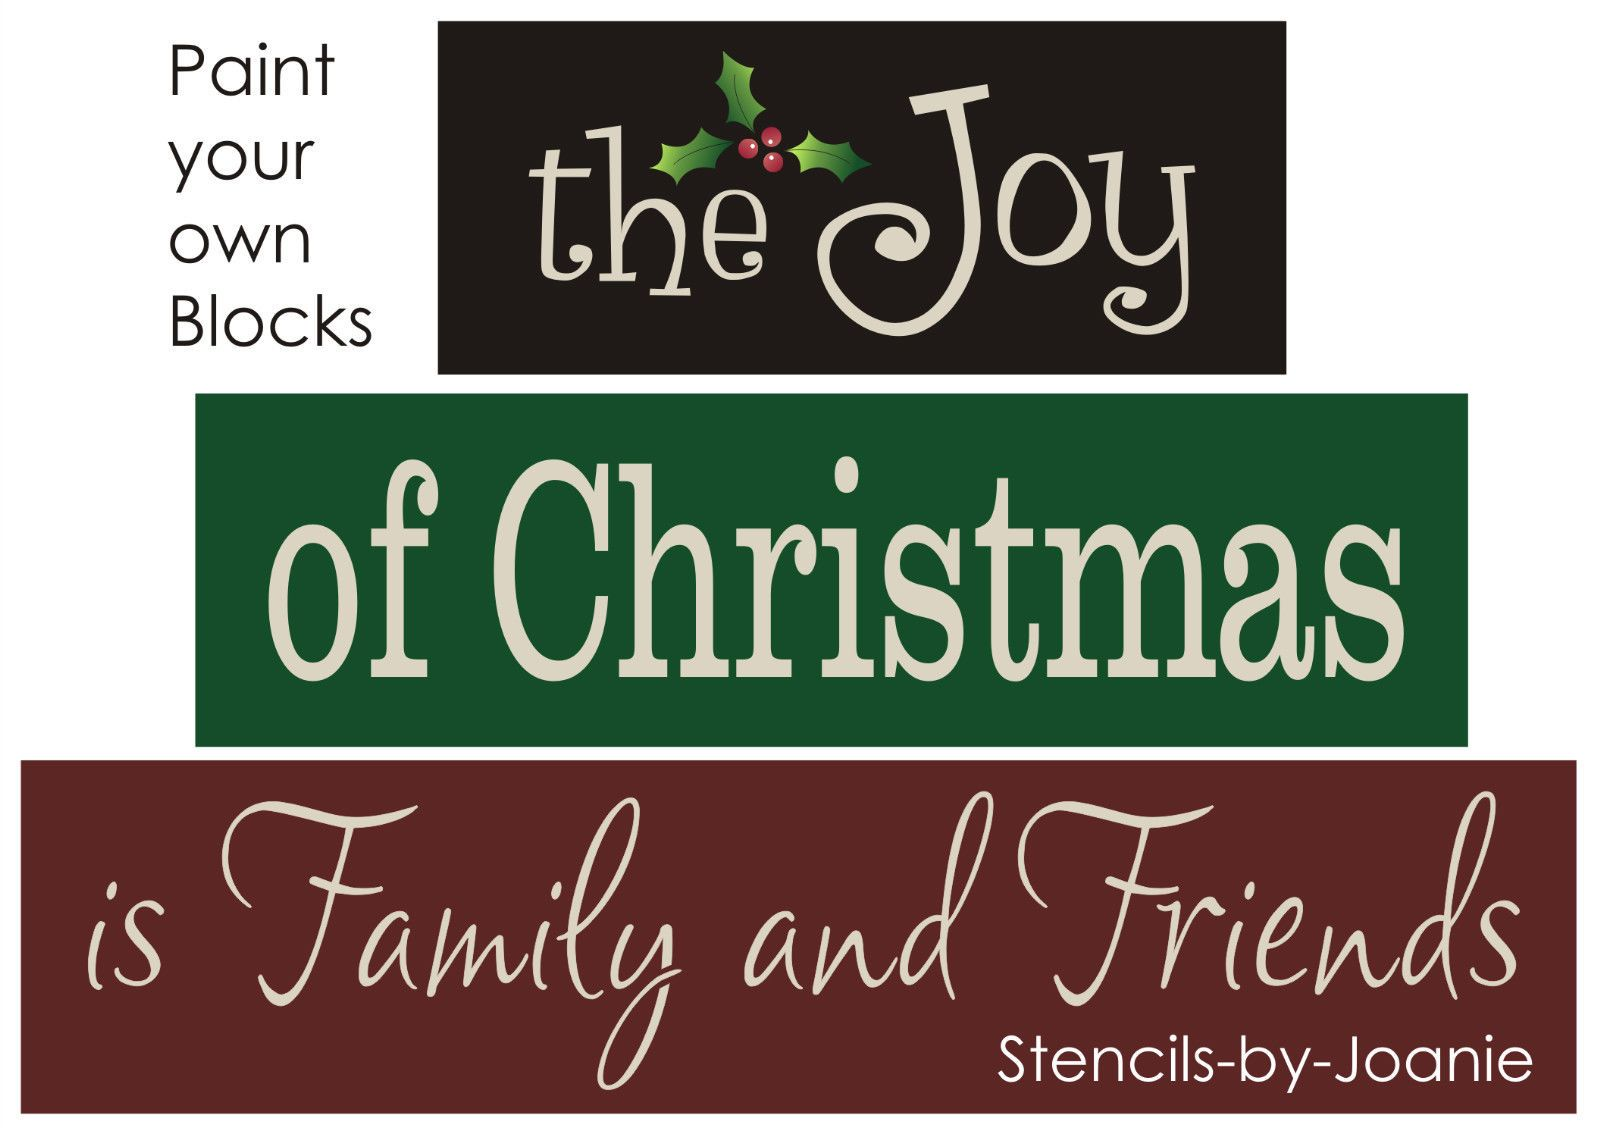 Block STENCIL Joy Christmas Family Friends Holly Mistletoe Country Prim signs picclick.com